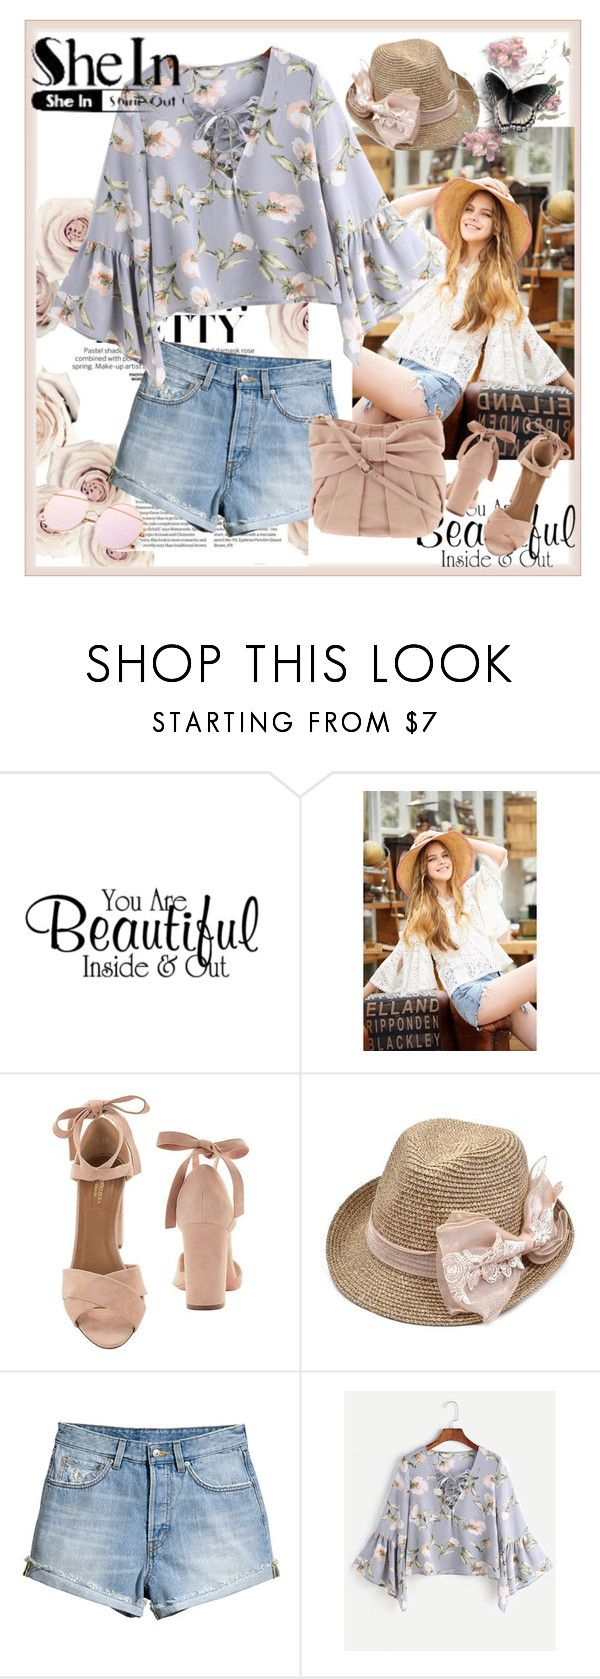 """""""Shein"""" by sanela1209 ❤ liked on Polyvore featuring Aquazzura, H&M and RED Valentino"""